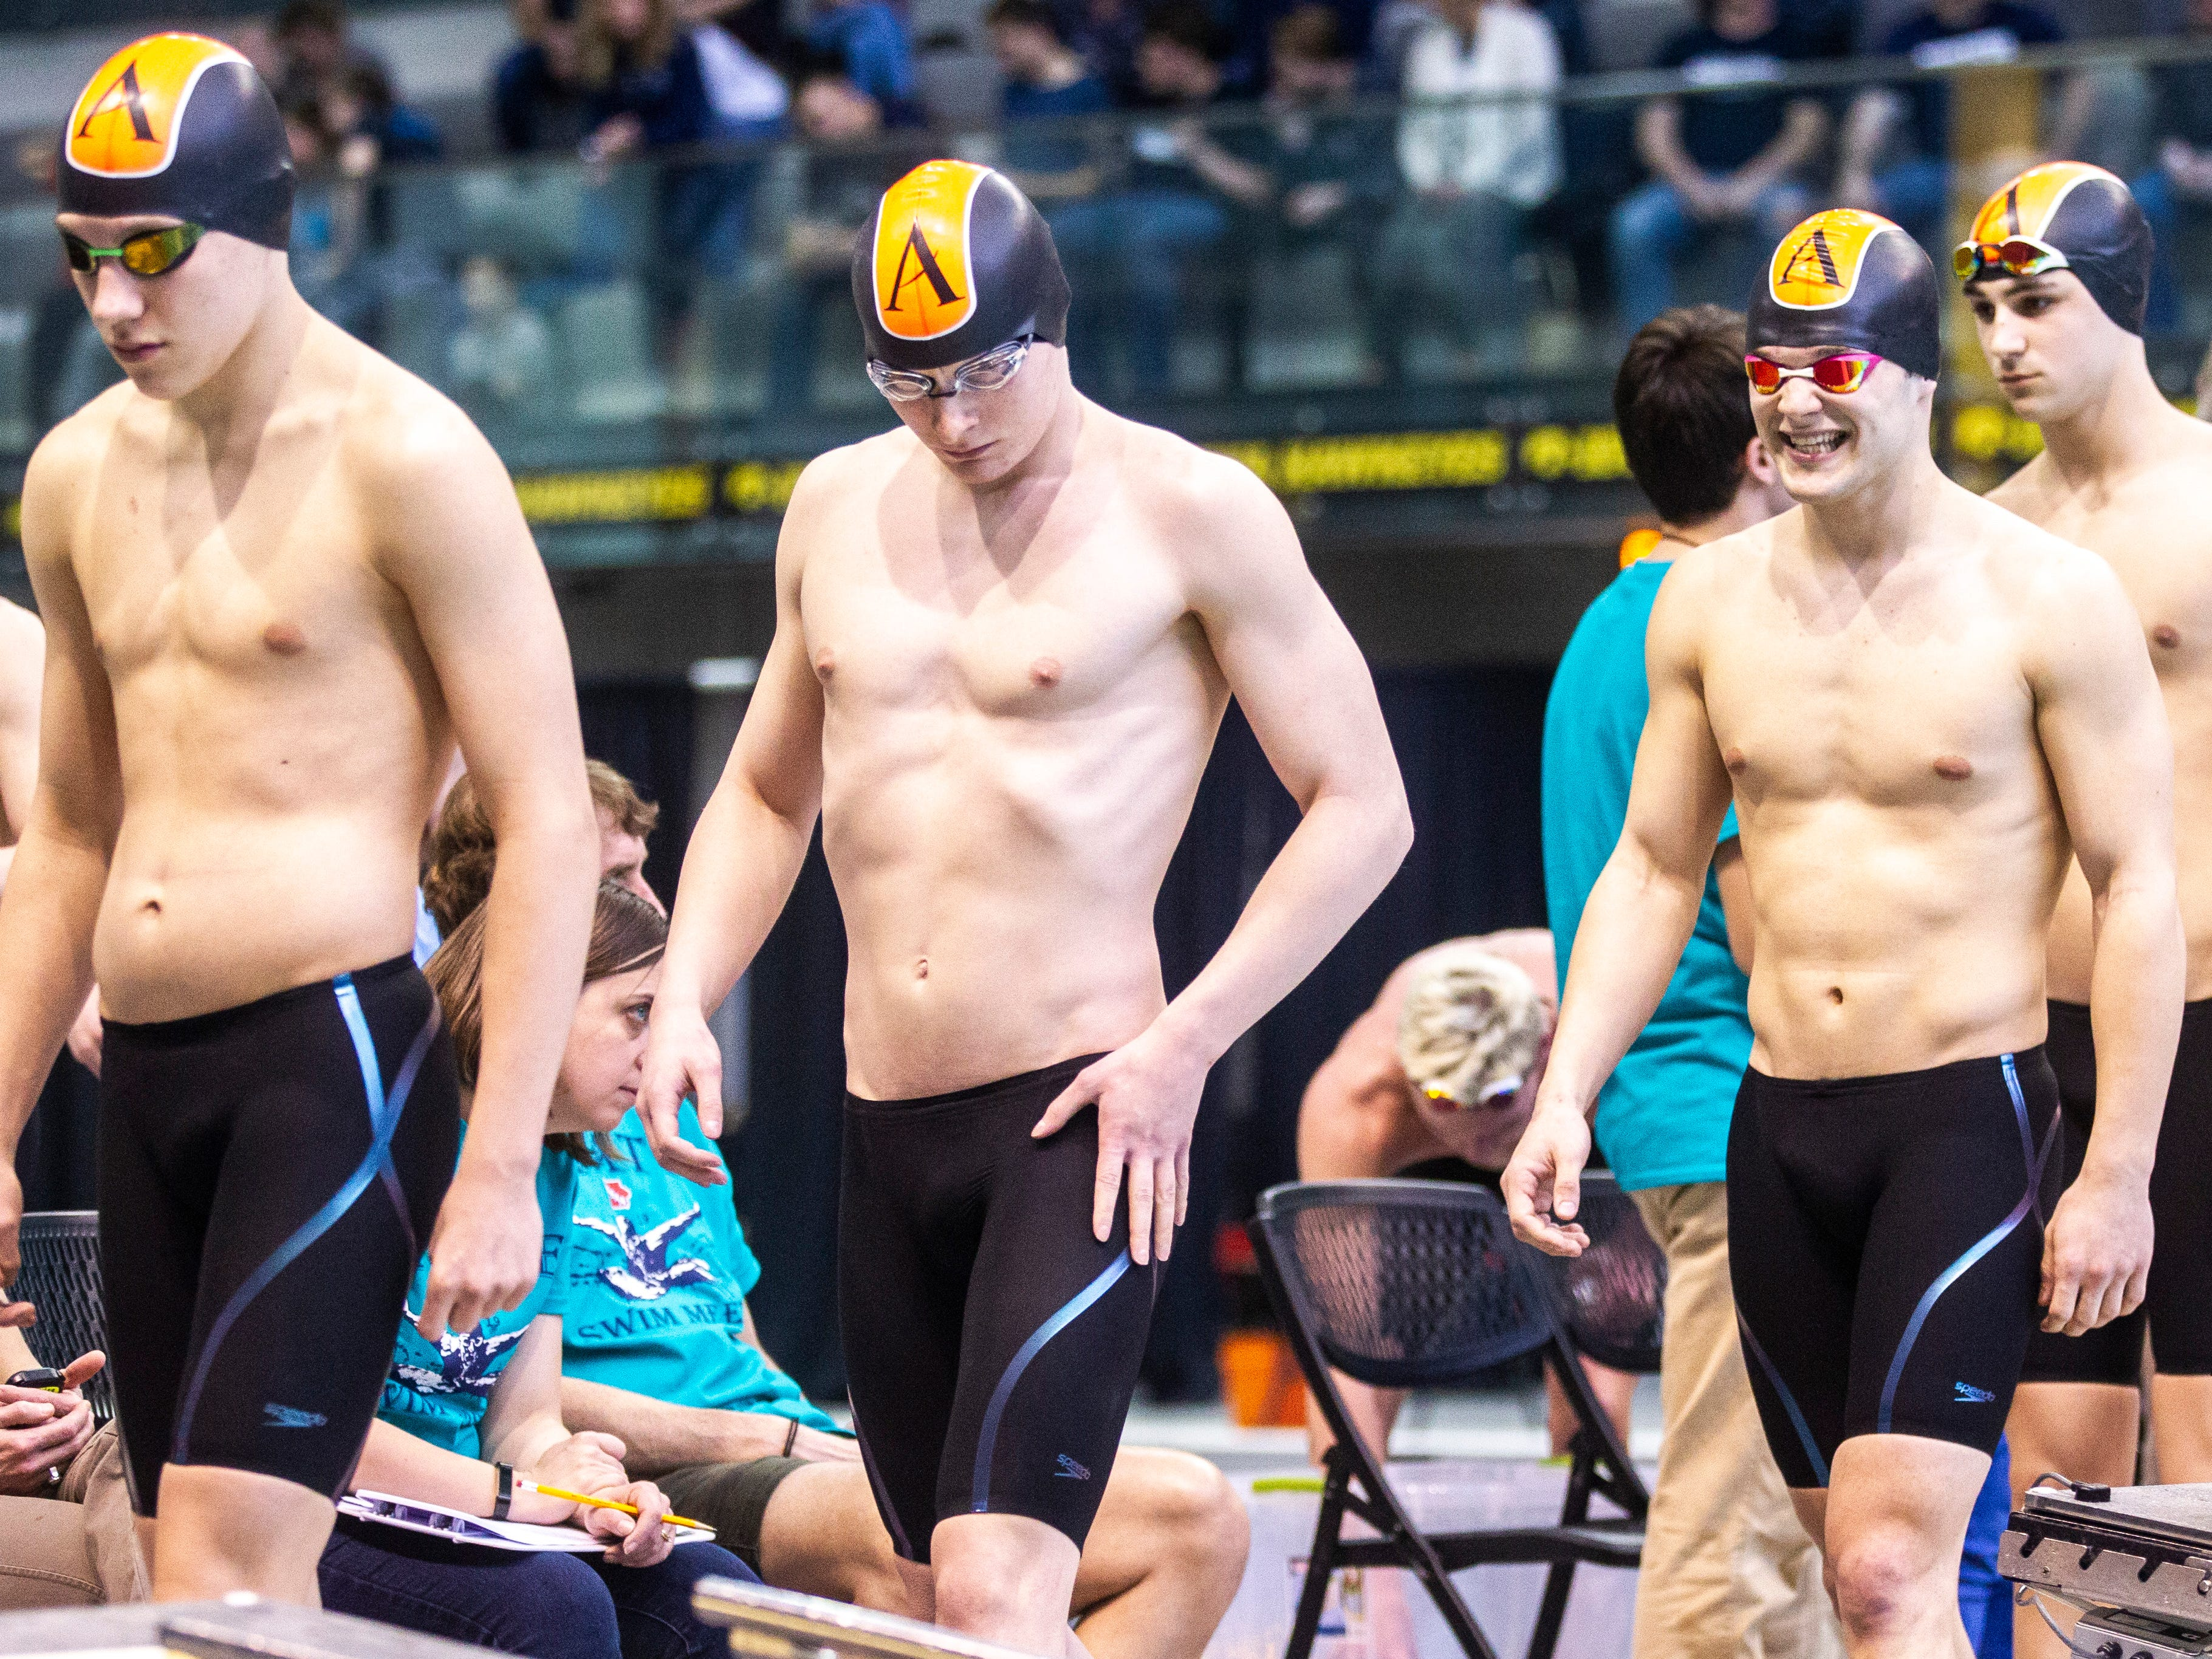 Ames' 200 yard freestyle relay is introduced during the Iowa boys' state swimming regional championship meet on Saturday, Feb. 9, 2019 at Campus Recreation and Wellness Center on the University of Iowa campus in Iowa City, Iowa.